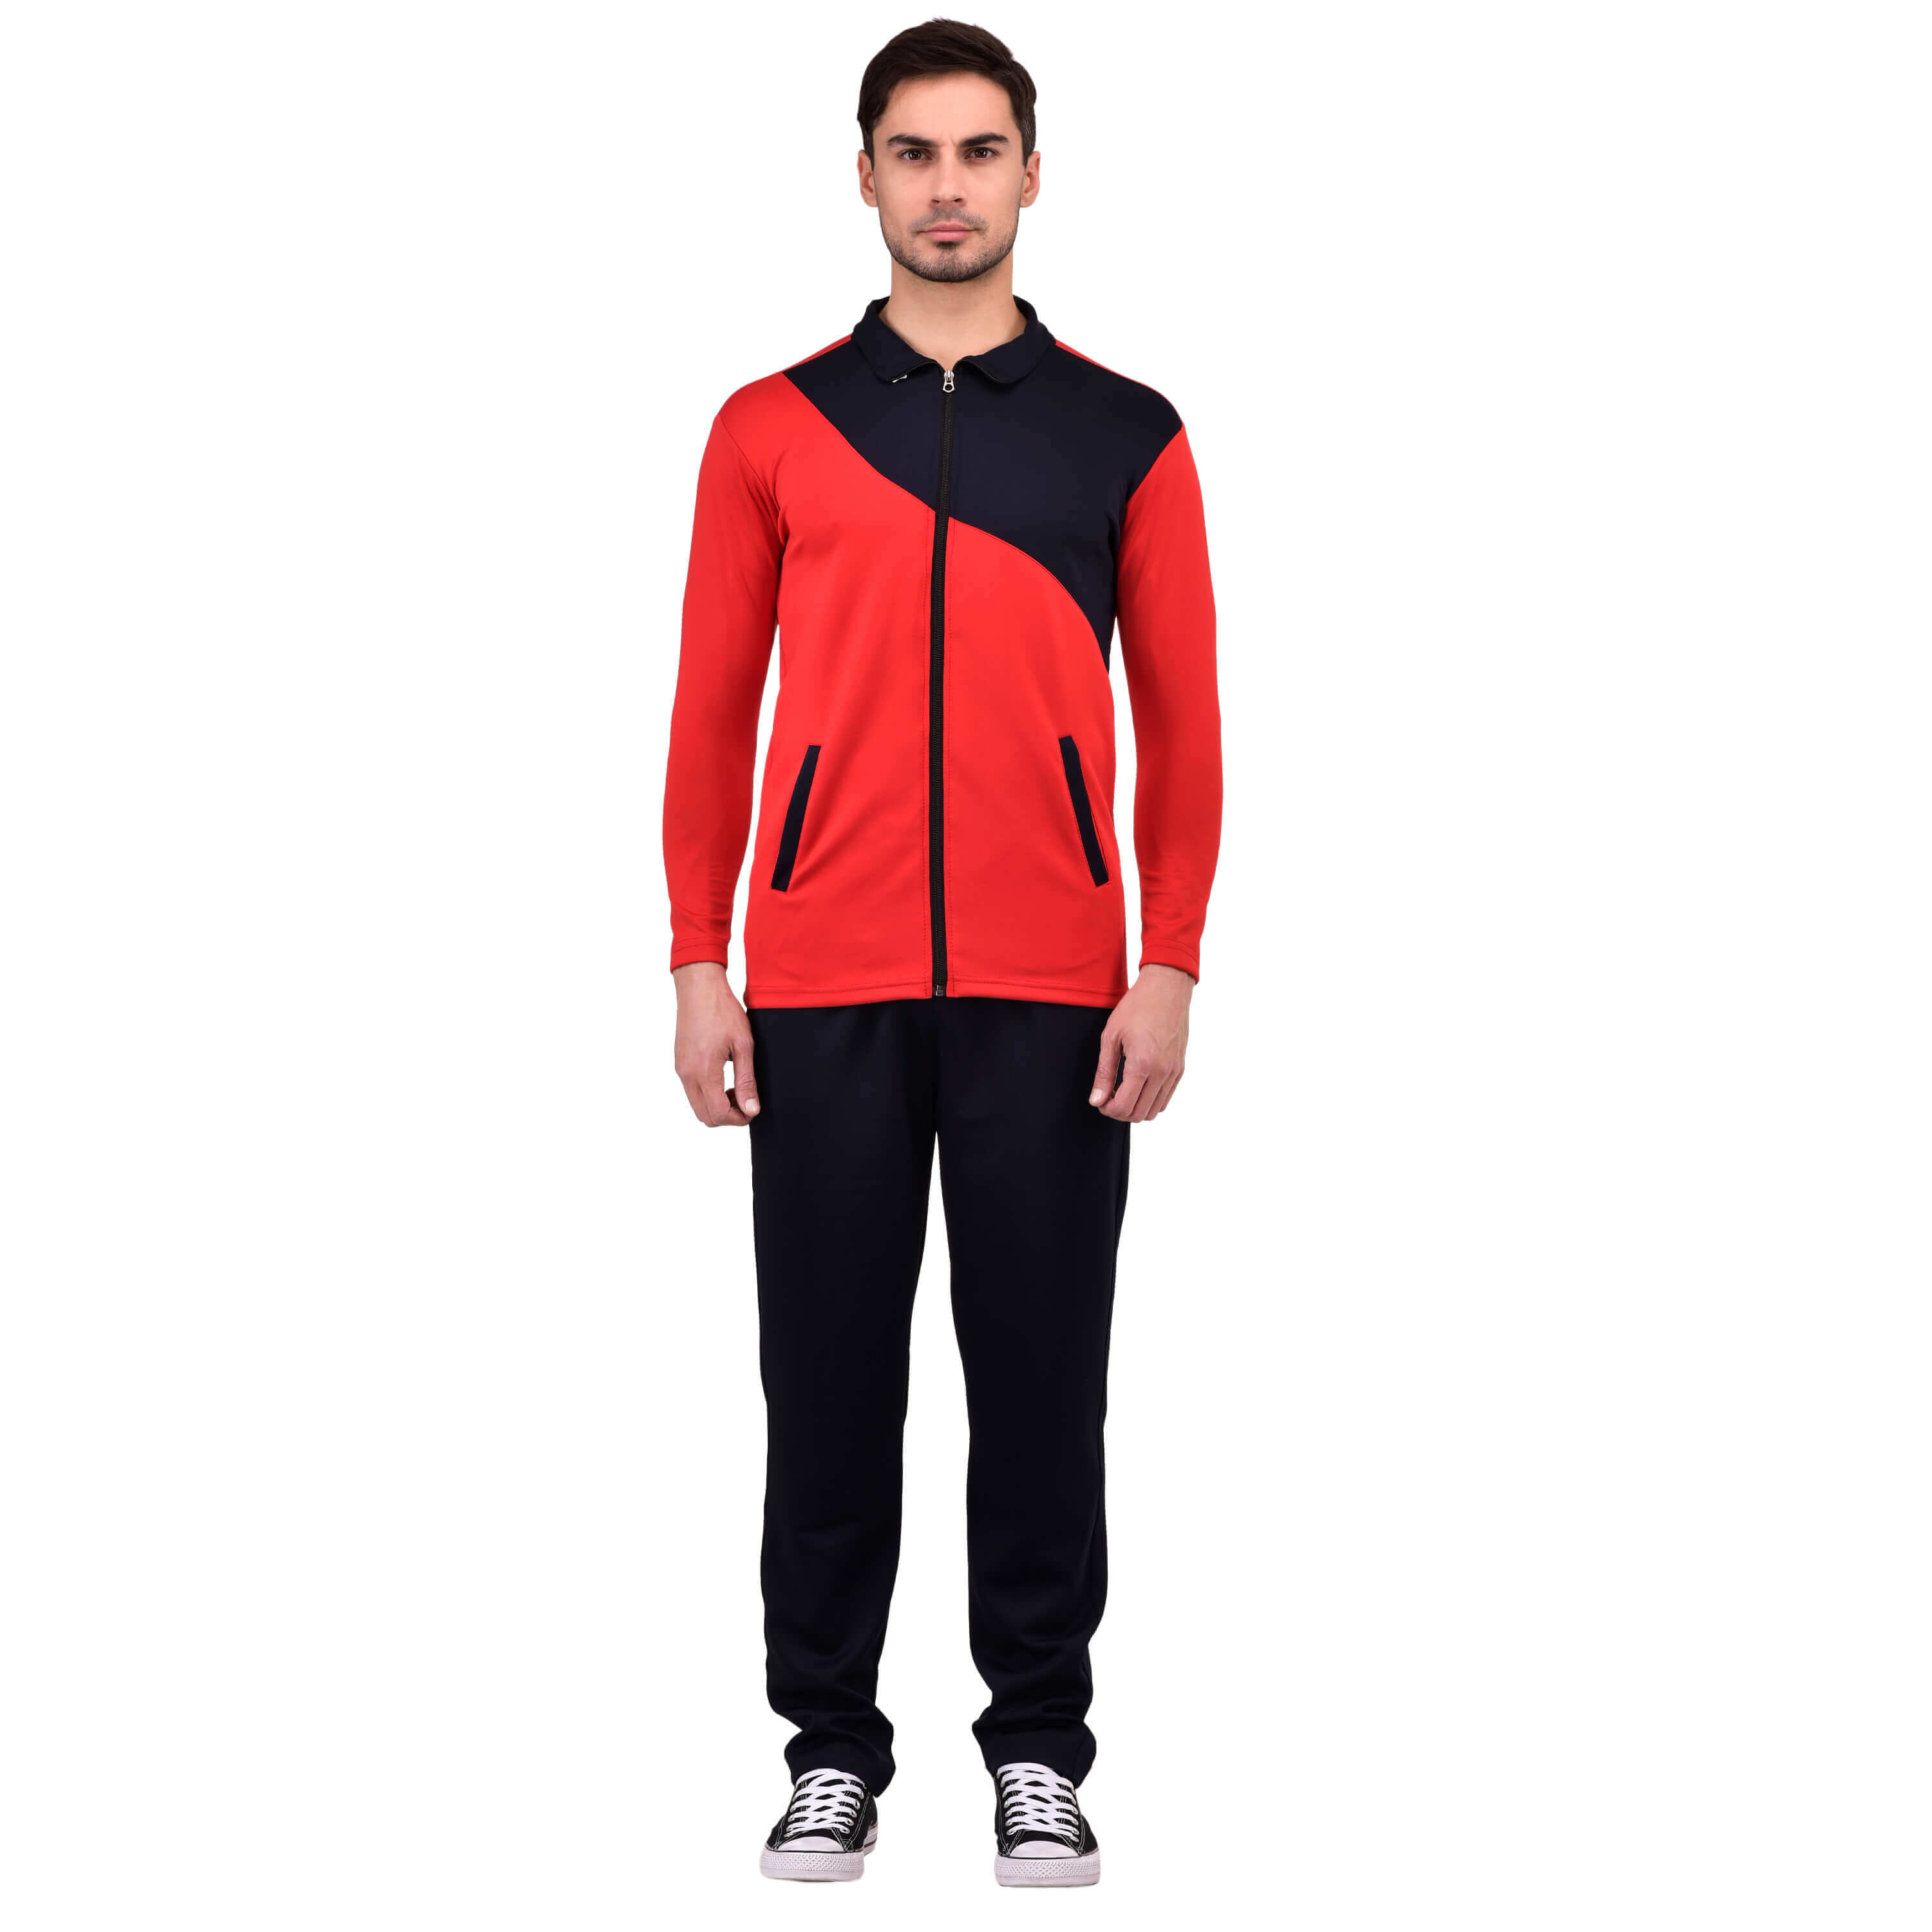 Mens Jogging Suits Manufacturers in Raipur